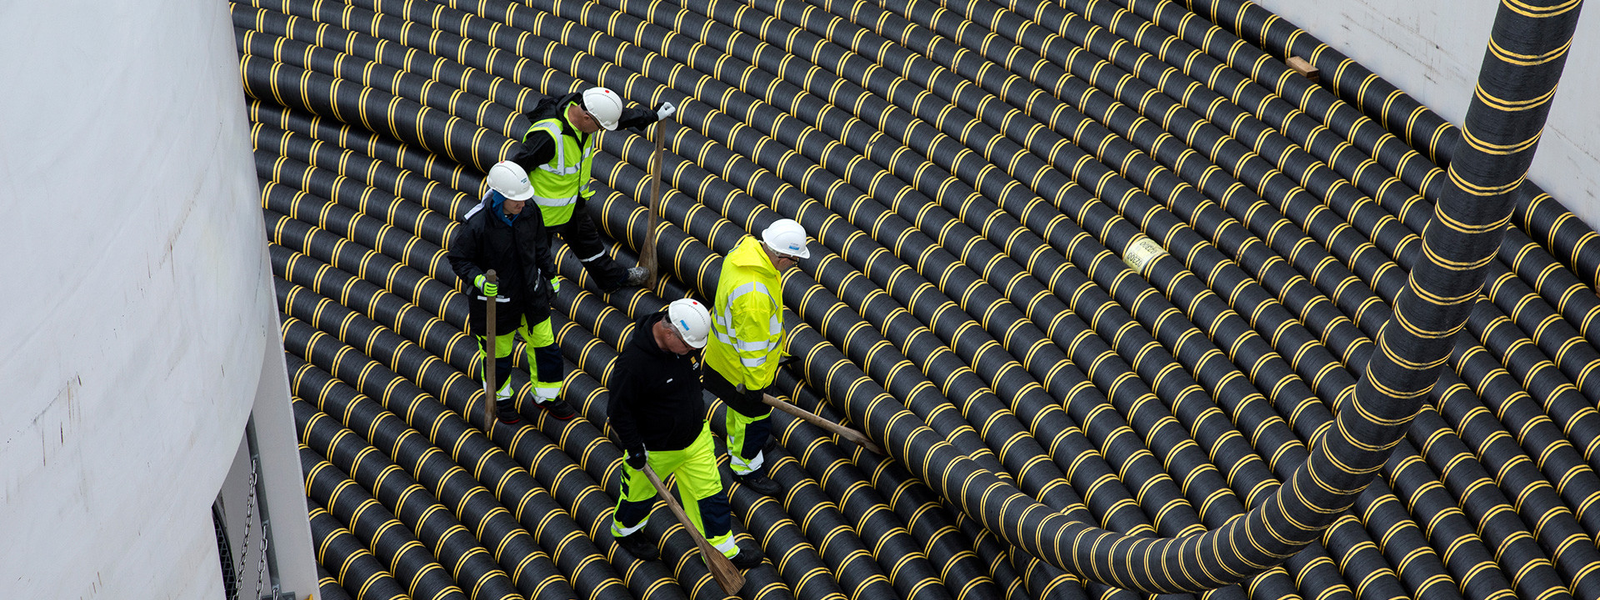 Loading of the high voltage AC submarine cable for Rentel offshore windfarm